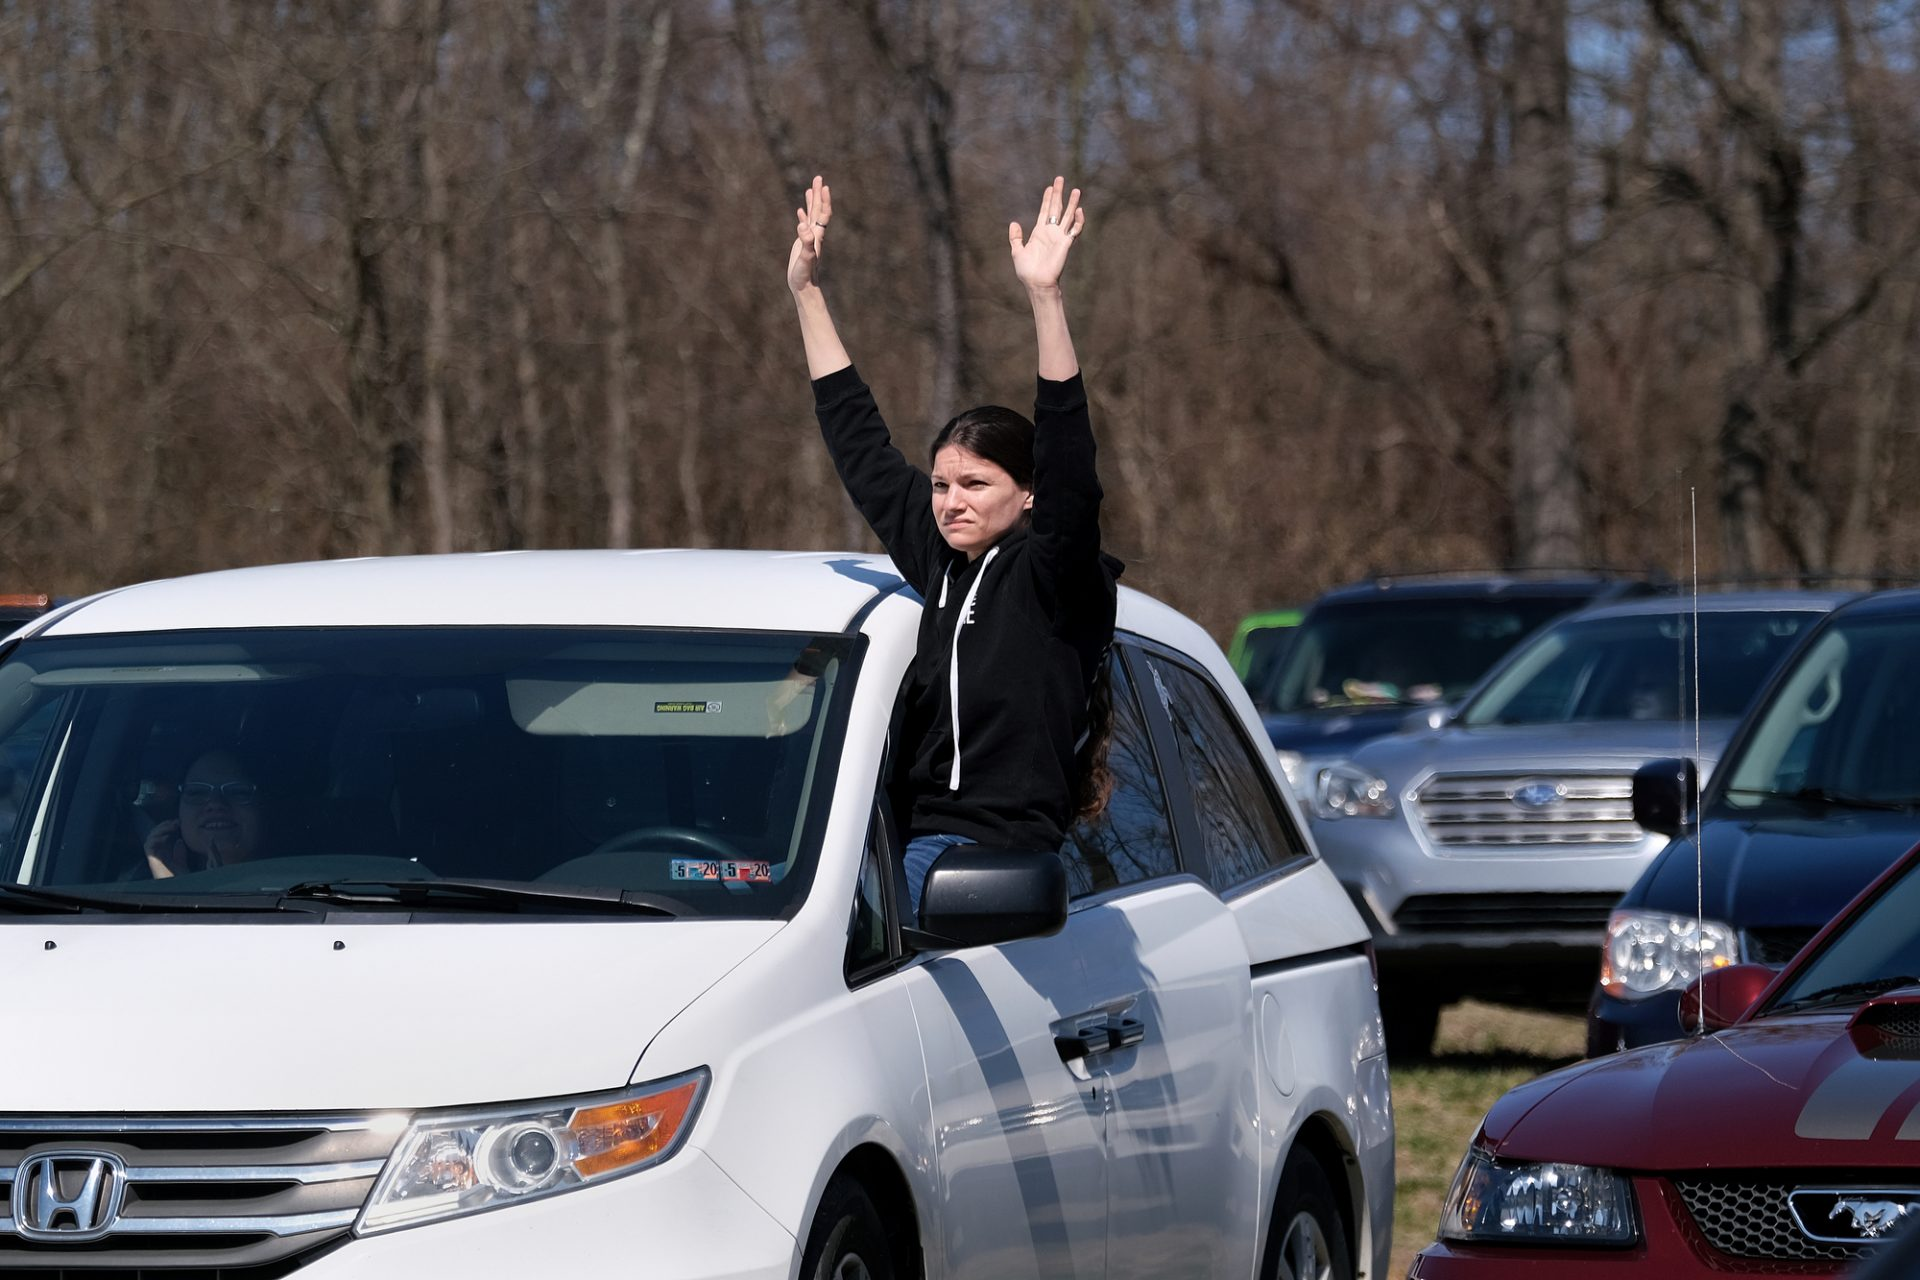 A parishioner during Bethany Wesleyan Church's Sunday worship service at Becky's Drive-In in Walnutport, Pennsylvania.